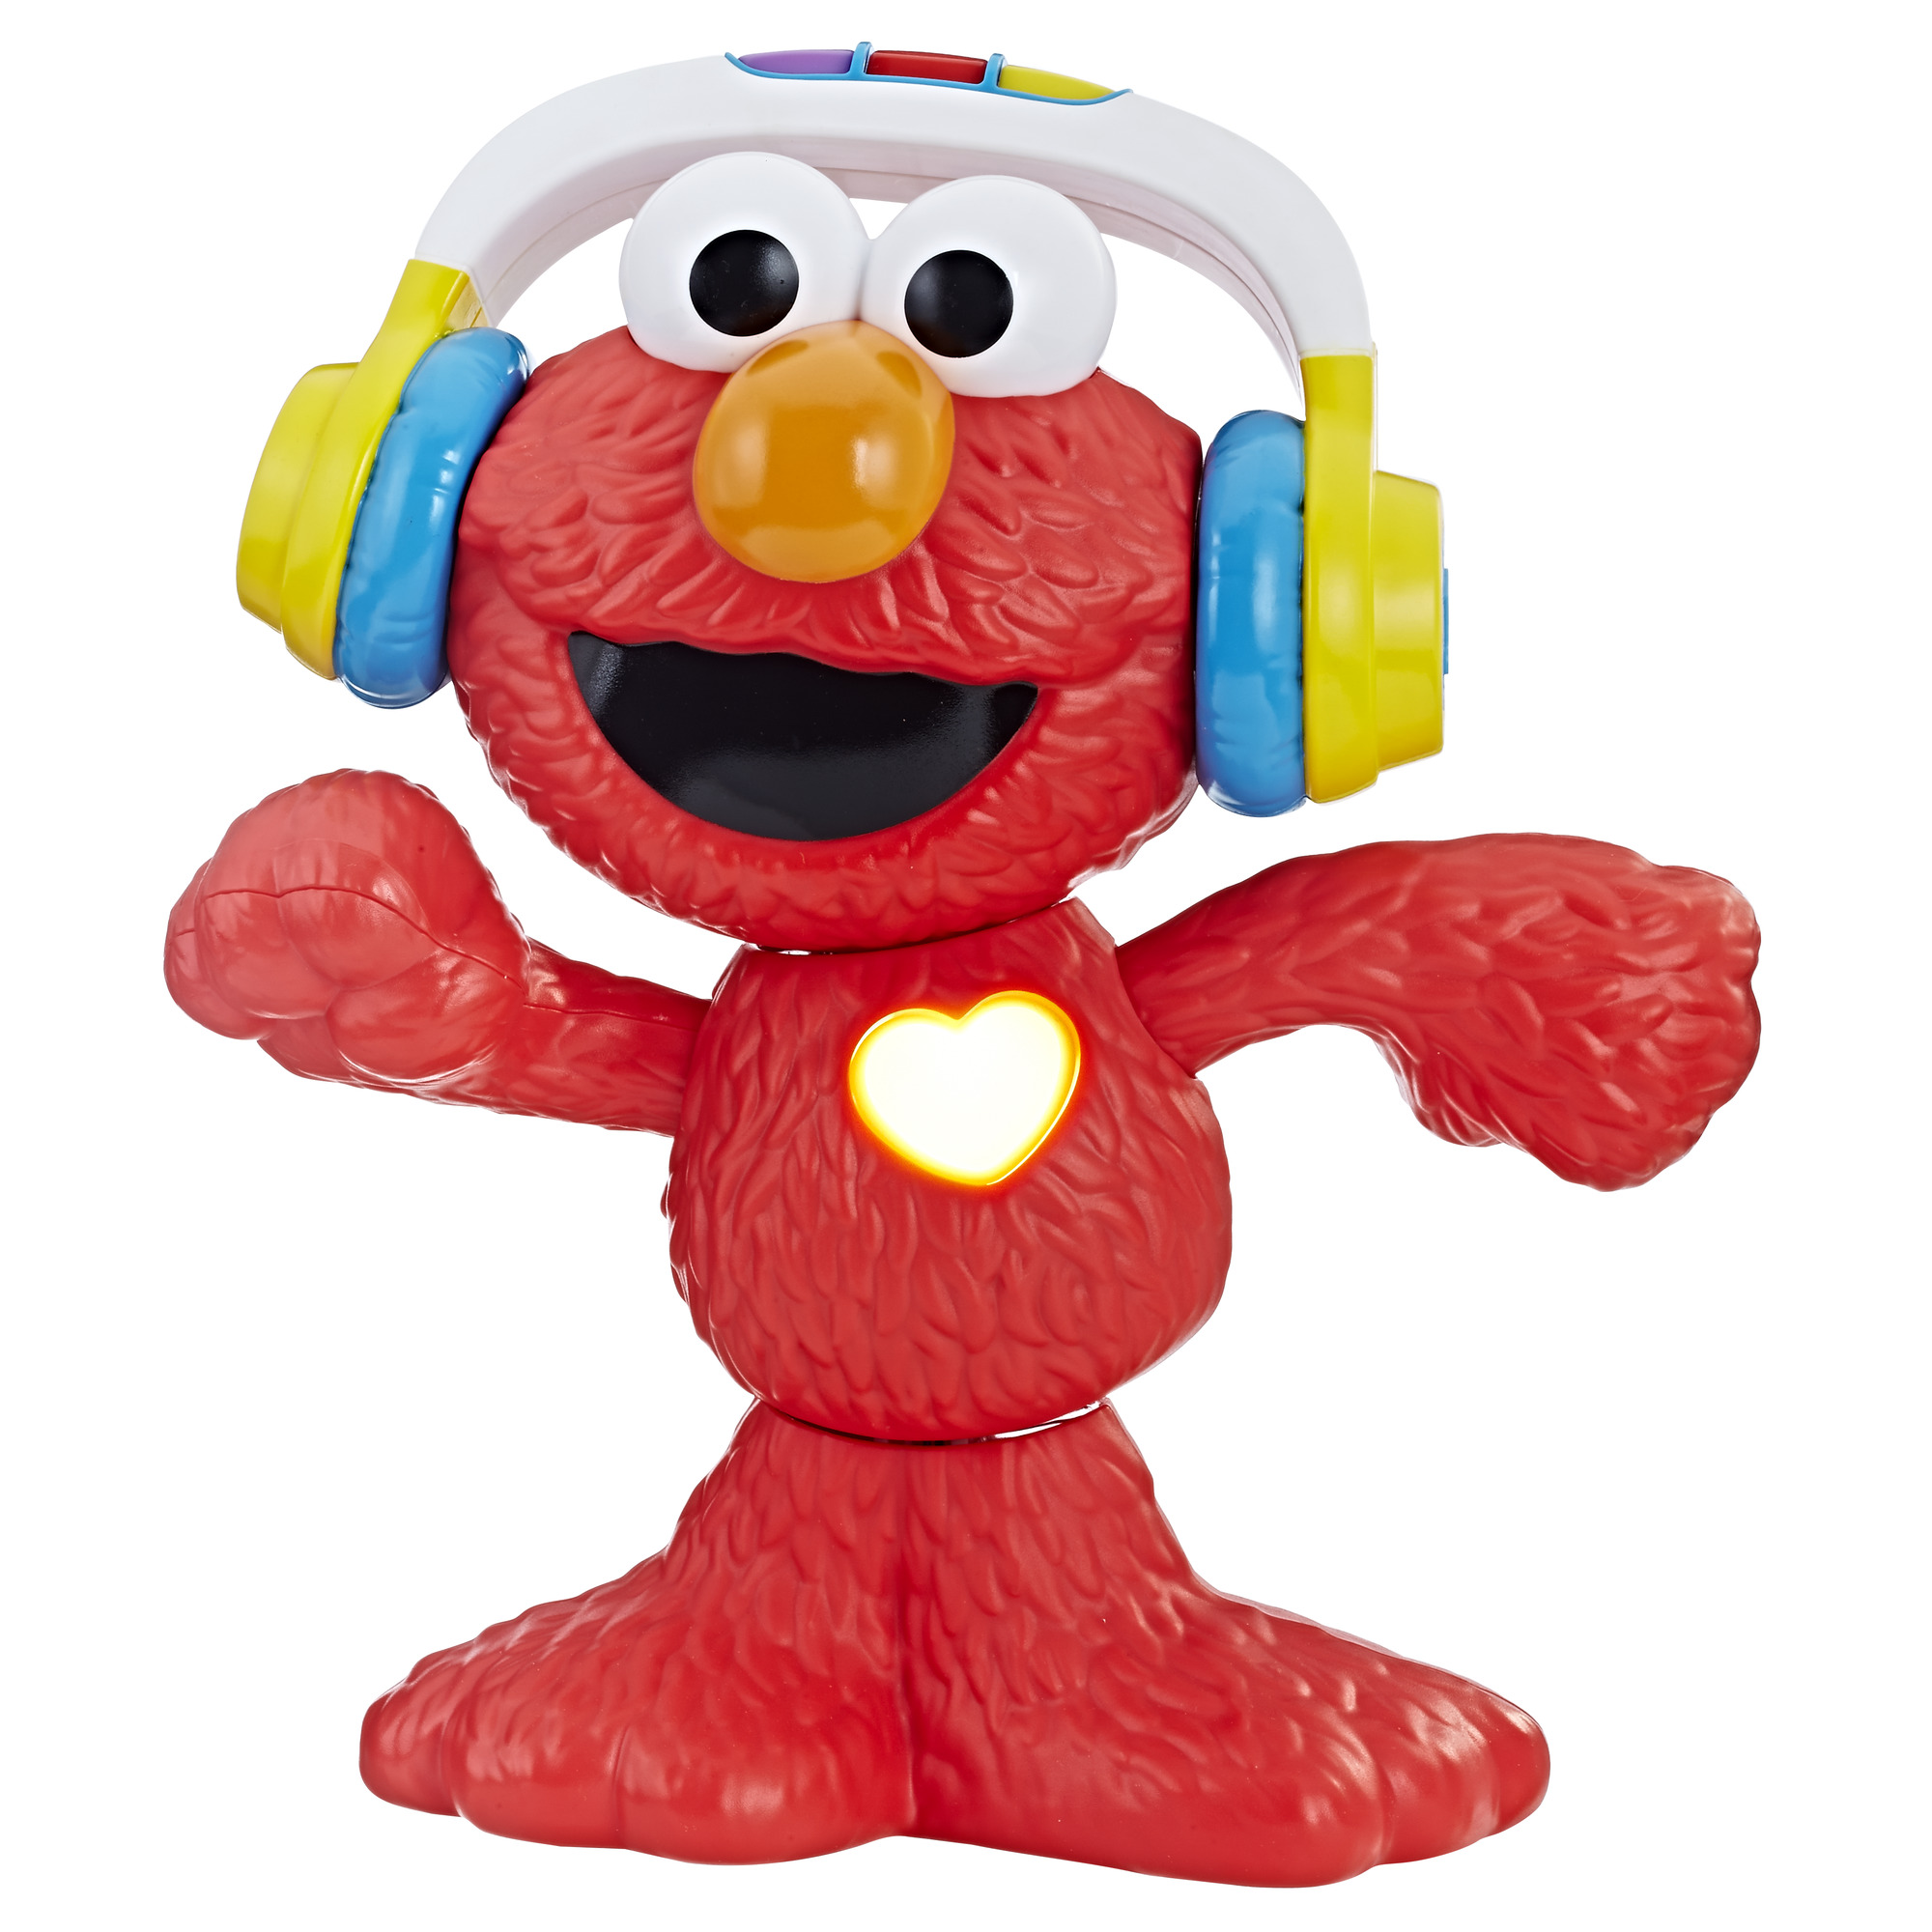 Playskool Friends Sesame Street Let's Dance Elmo by Sesame Street